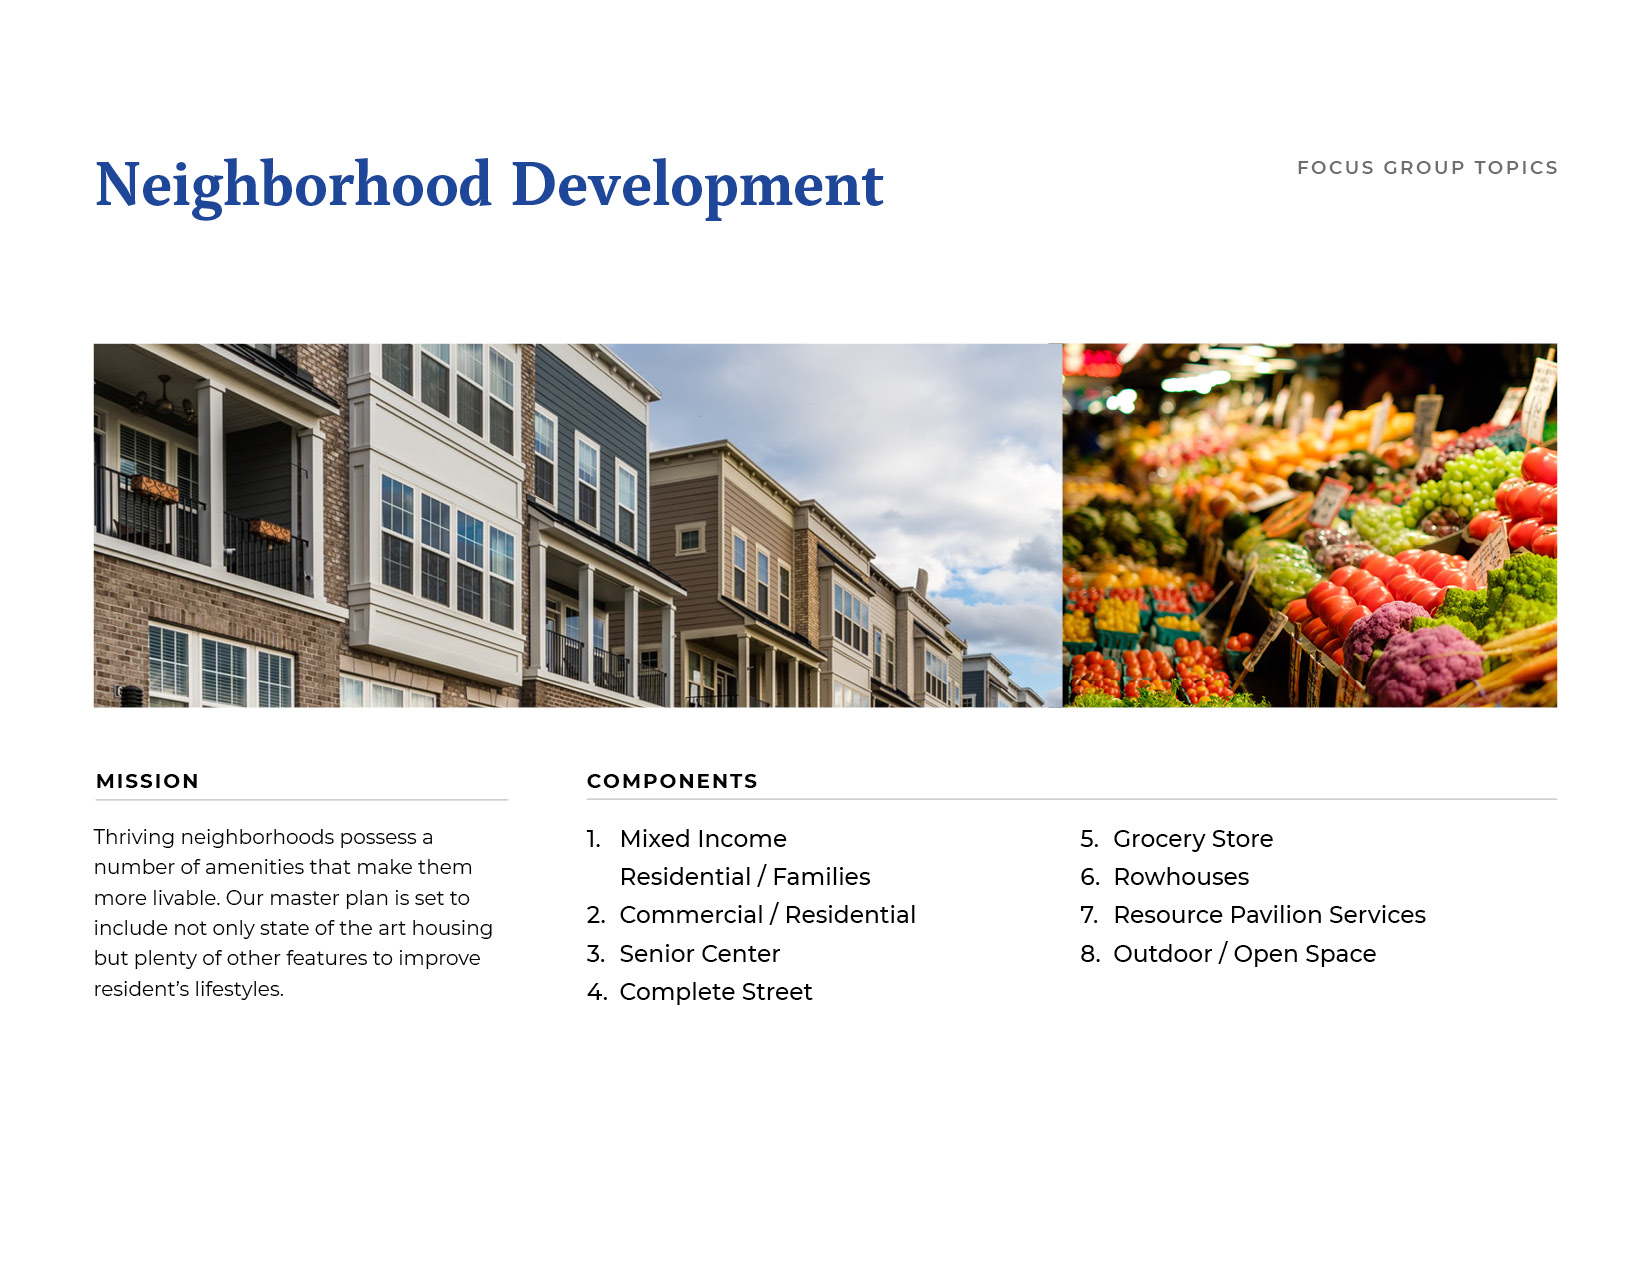 Neighborhood Development Board